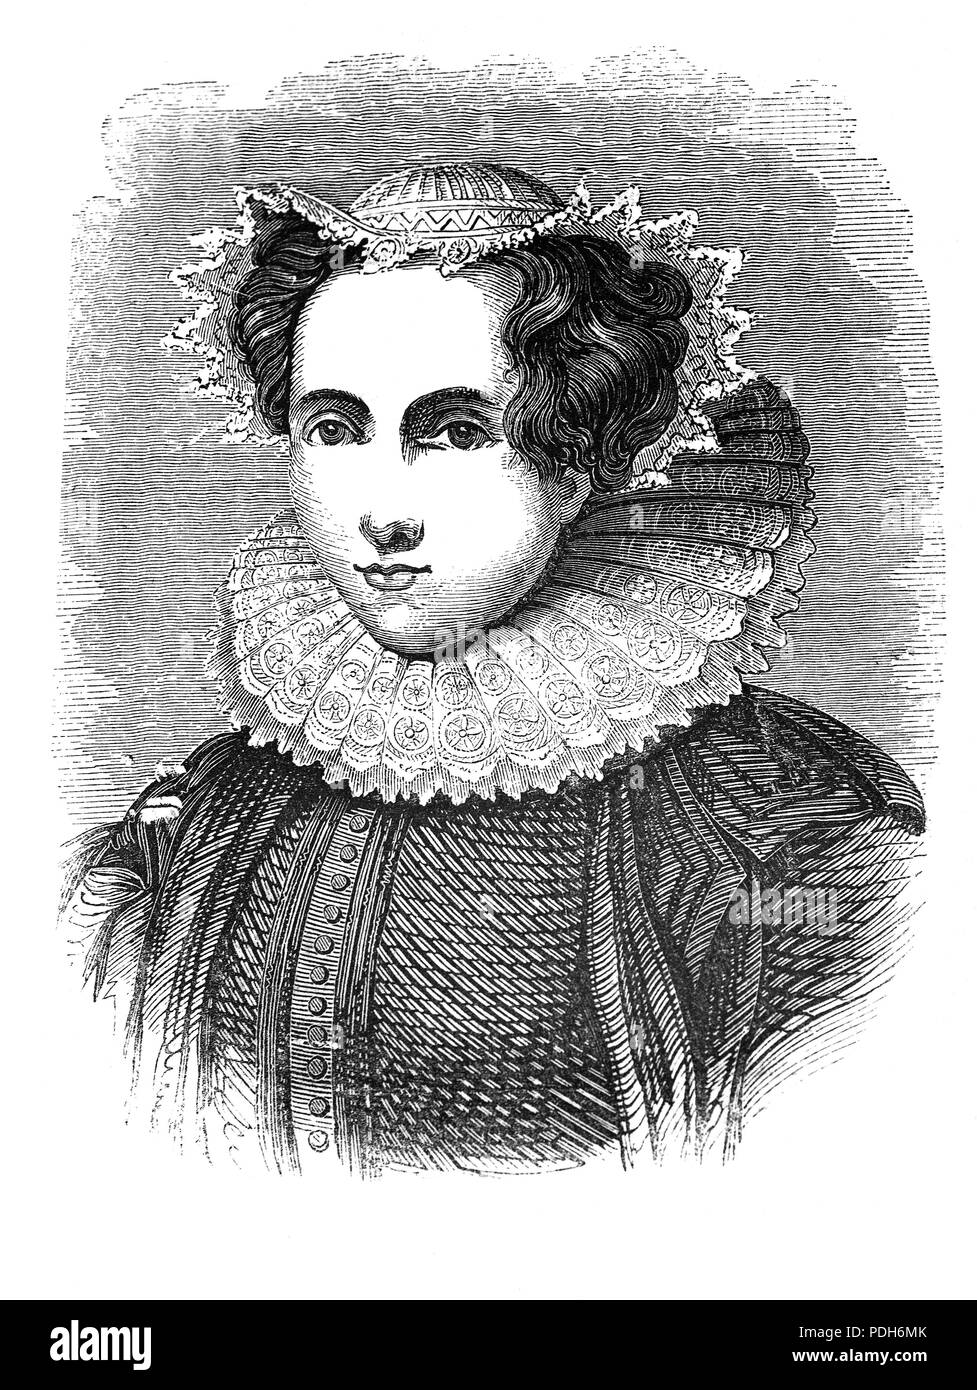 Mary, Queen of Scots (1542-1587), also known as Mary Stuart, reigned over Scotland from 14 December 1542 to 24 July 1567.  Mary, the only surviving legitimate child of King James V, was six days old when her father died and she acceded to the throne. She spent most of her childhood in France while Scotland was ruled by regents. Mary returned to Scotland, arriving in Leith on 19 August 1561. Four years later, she married her first cousin, Henry Stuart, Lord Darnley and in June 1566 they had a son, James. The following year Darnley  was found murdered in the garden. - Stock Image